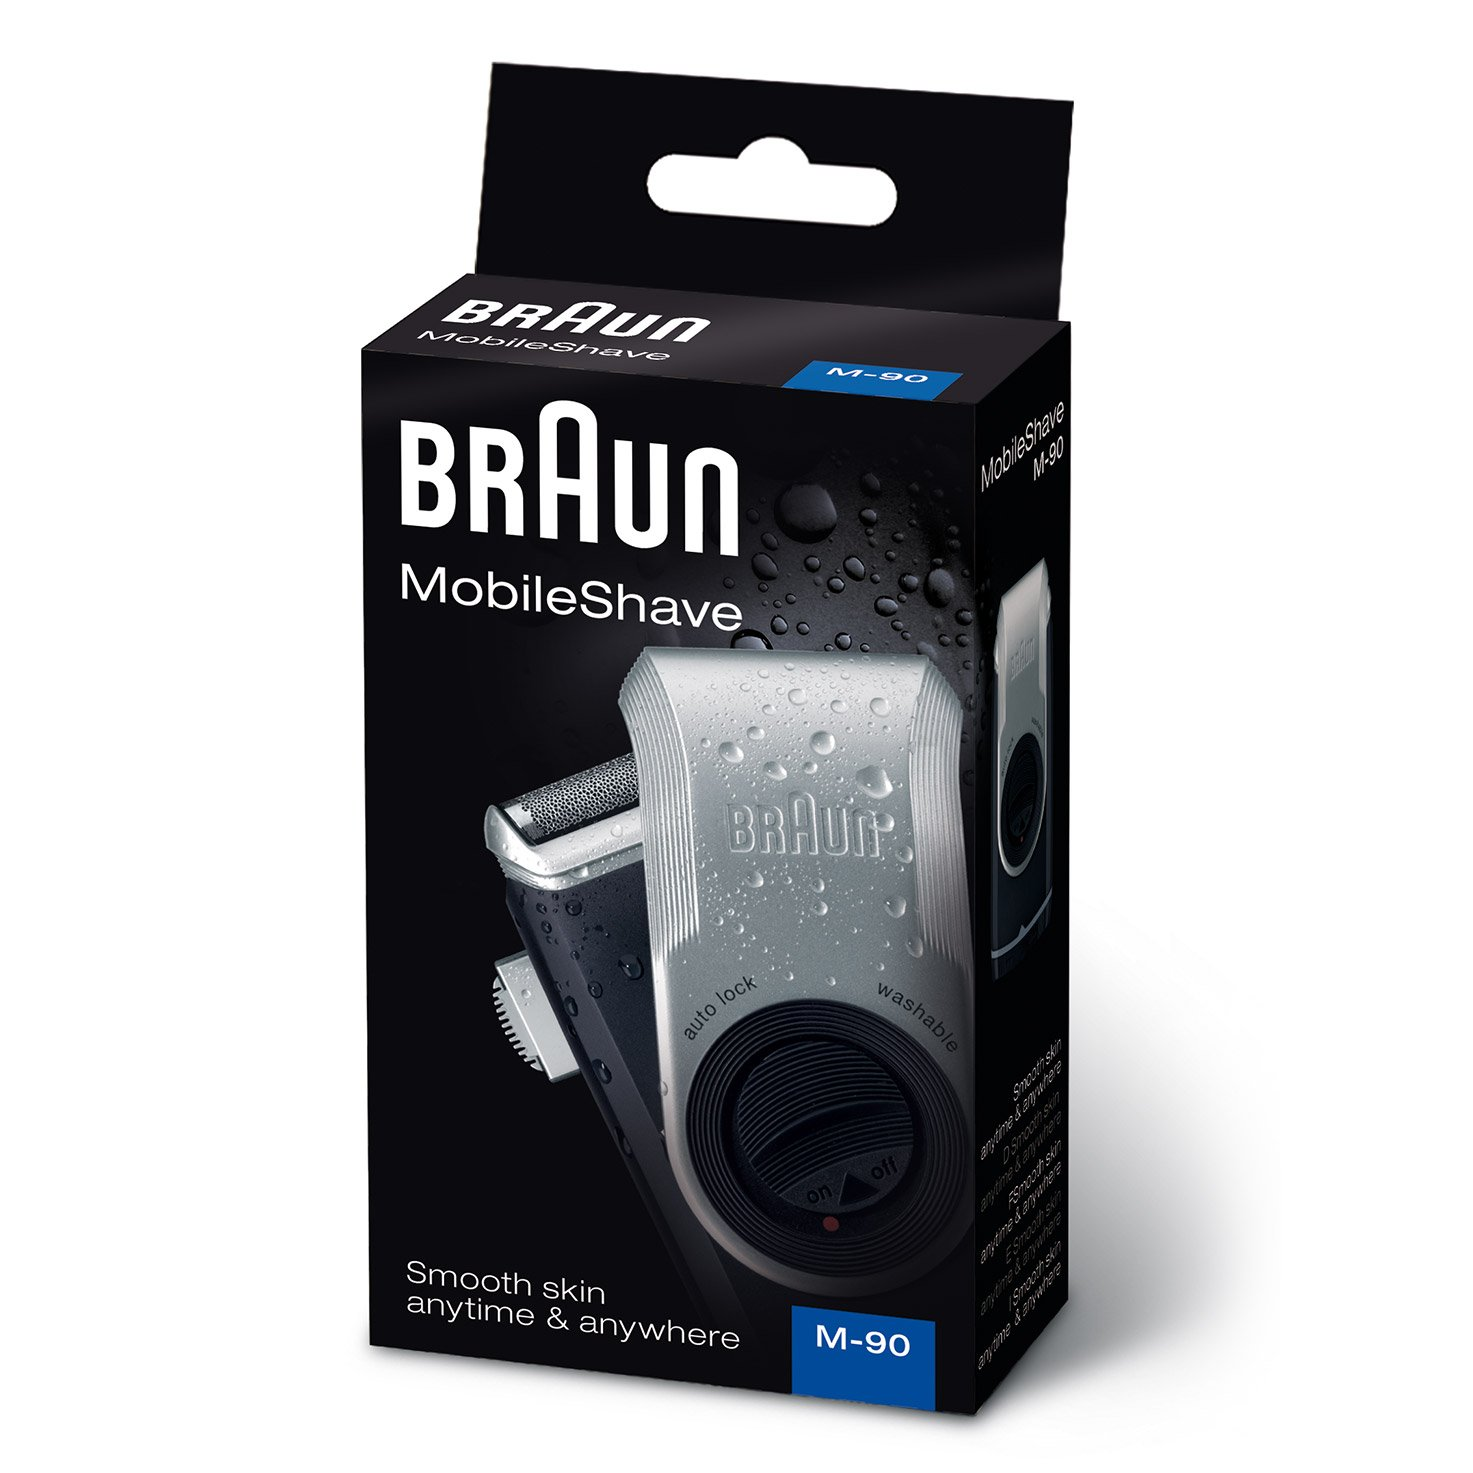 Braun MobileShave M-90 - packaging